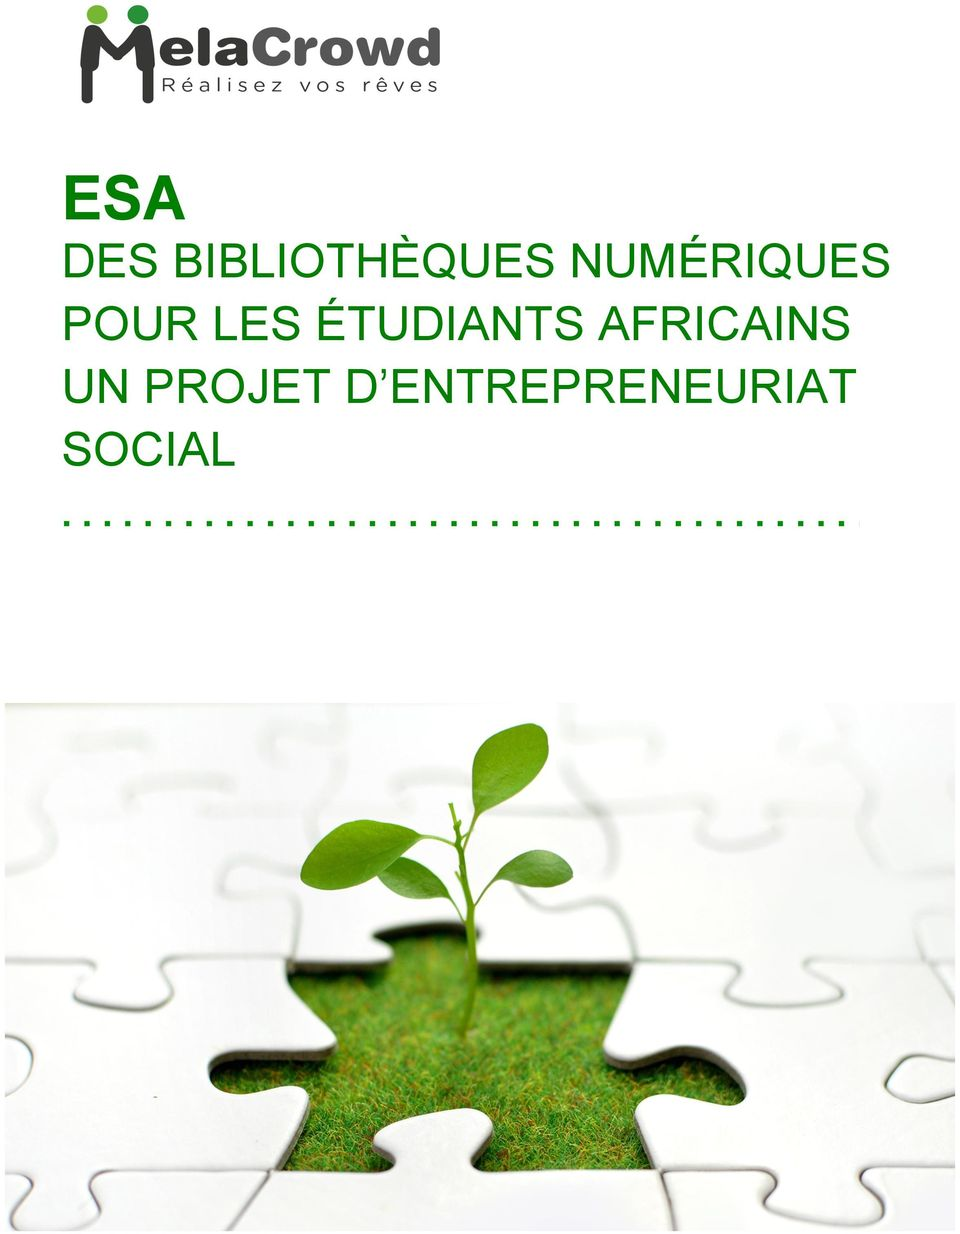 ÉTUDIANTS AFRICAINS UN